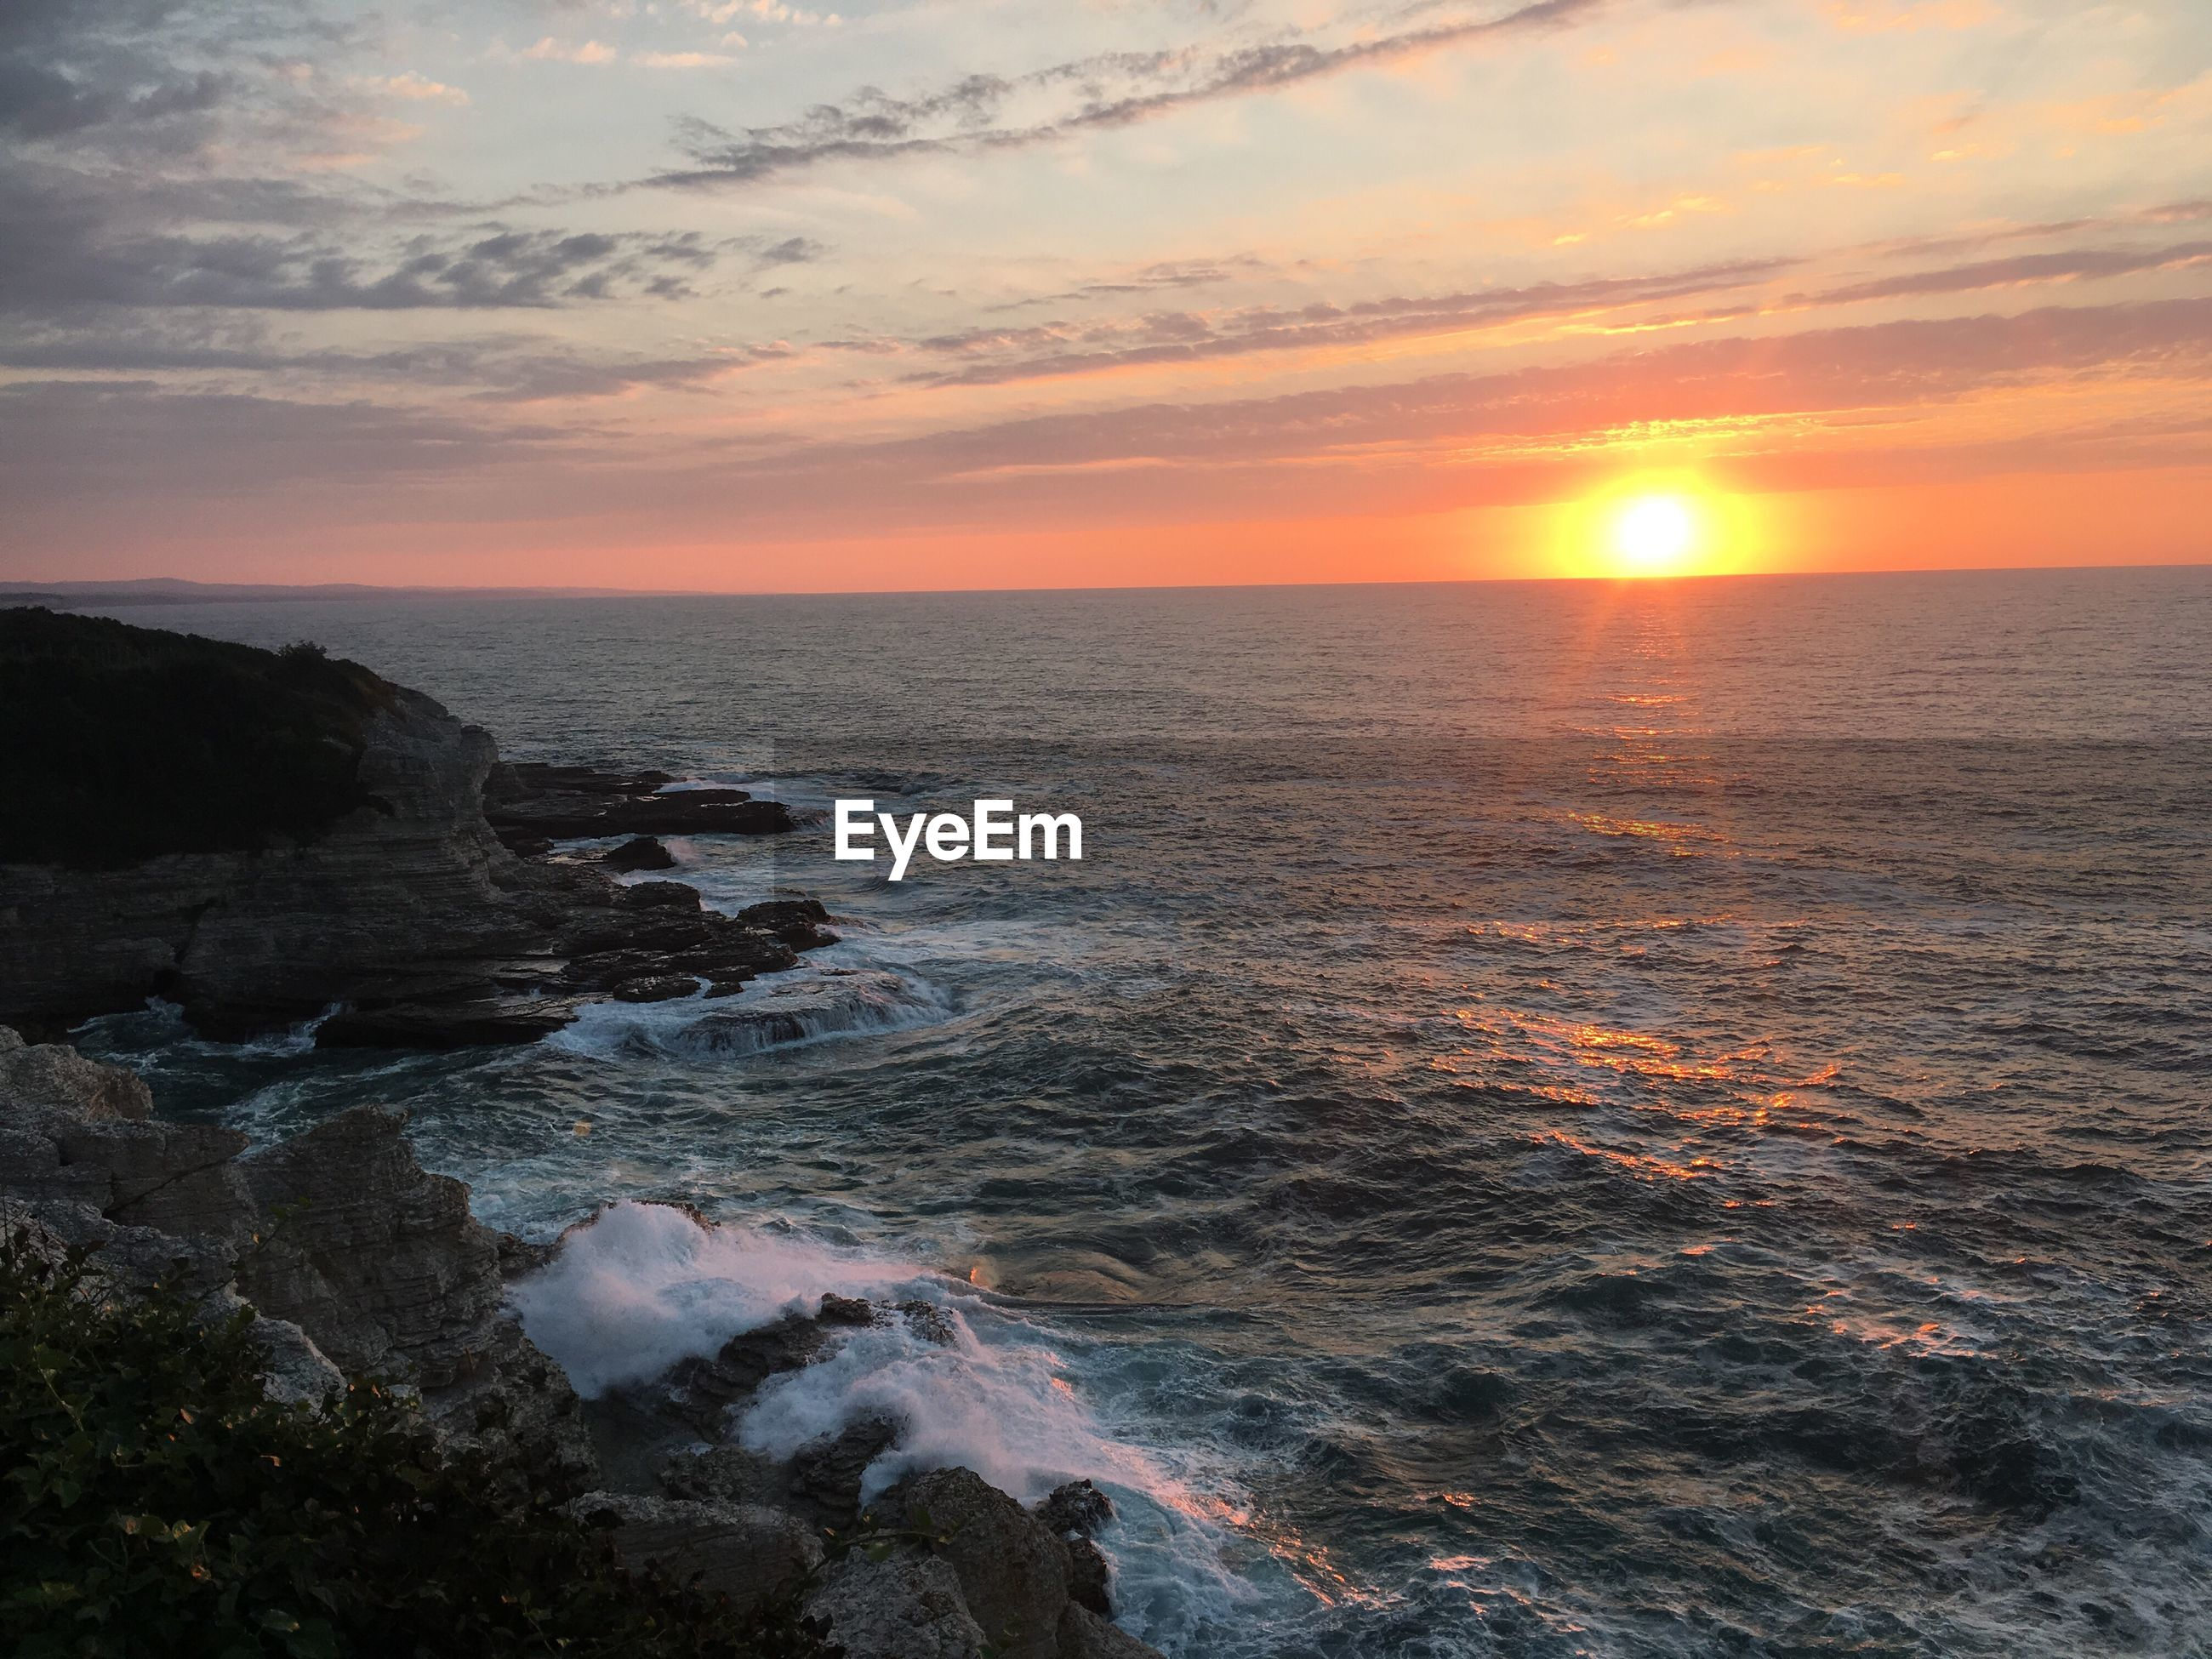 sunset, sea, water, scenics, horizon over water, beauty in nature, sun, tranquil scene, nature, beach, idyllic, sky, tranquility, reflection, cloud - sky, shore, orange color, outdoors, majestic, non-urban scene, coastline, remote, bright, wave, rock formation, no people, vacations, seascape, tourism